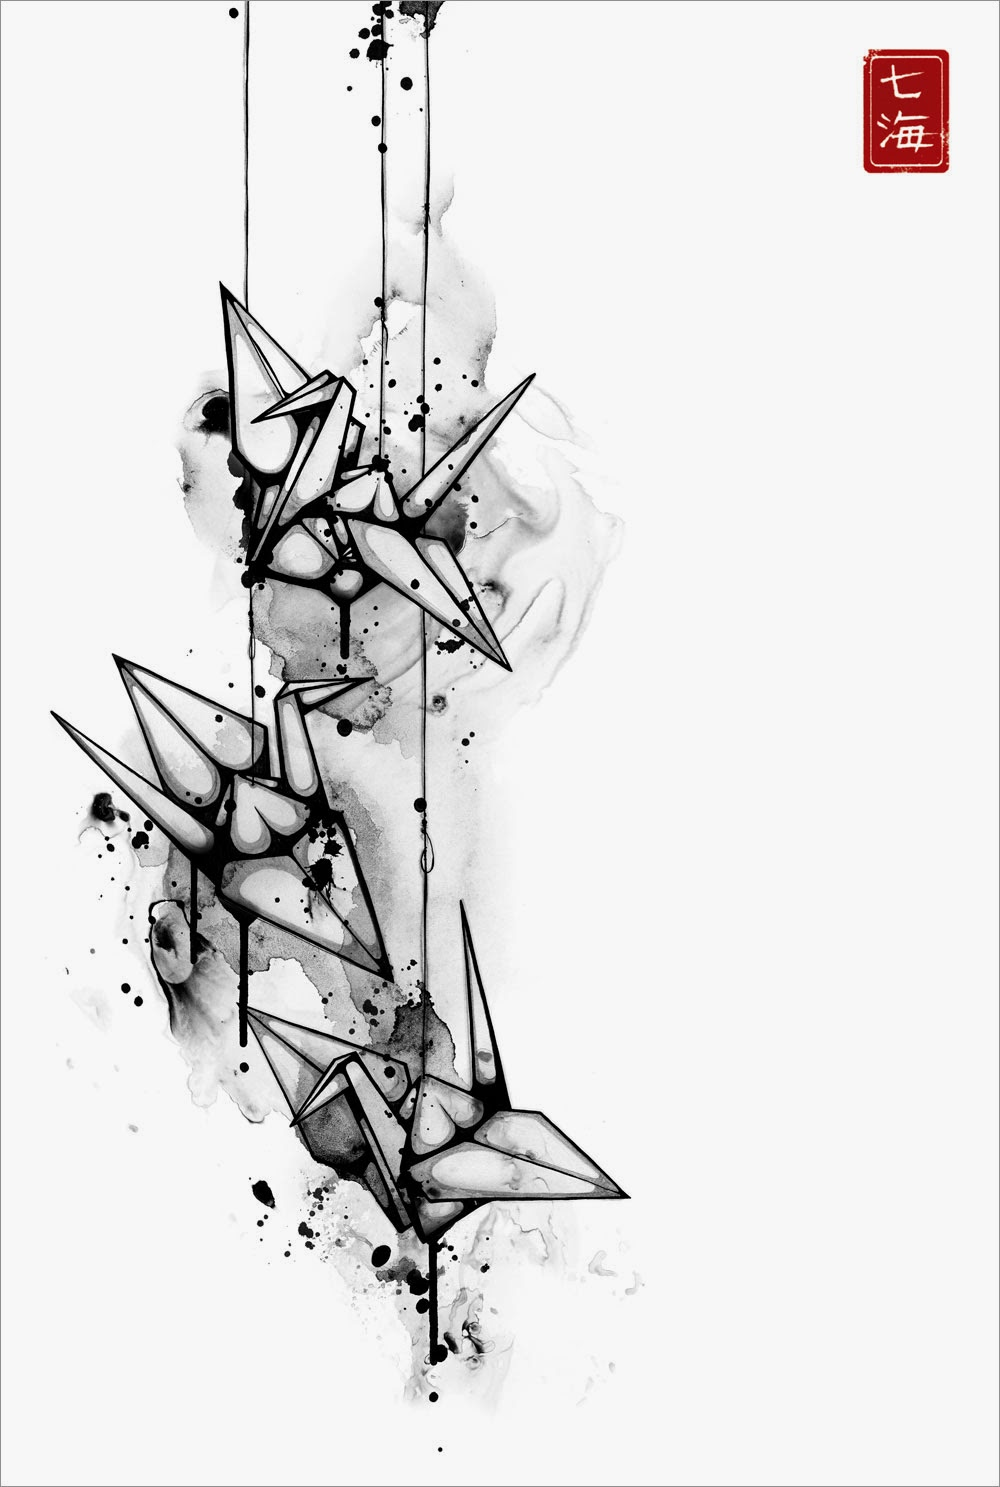 15-Tsuru-Nanami-Cowdroy-Splashes-of-Ink-Drawings-www-designstack-co